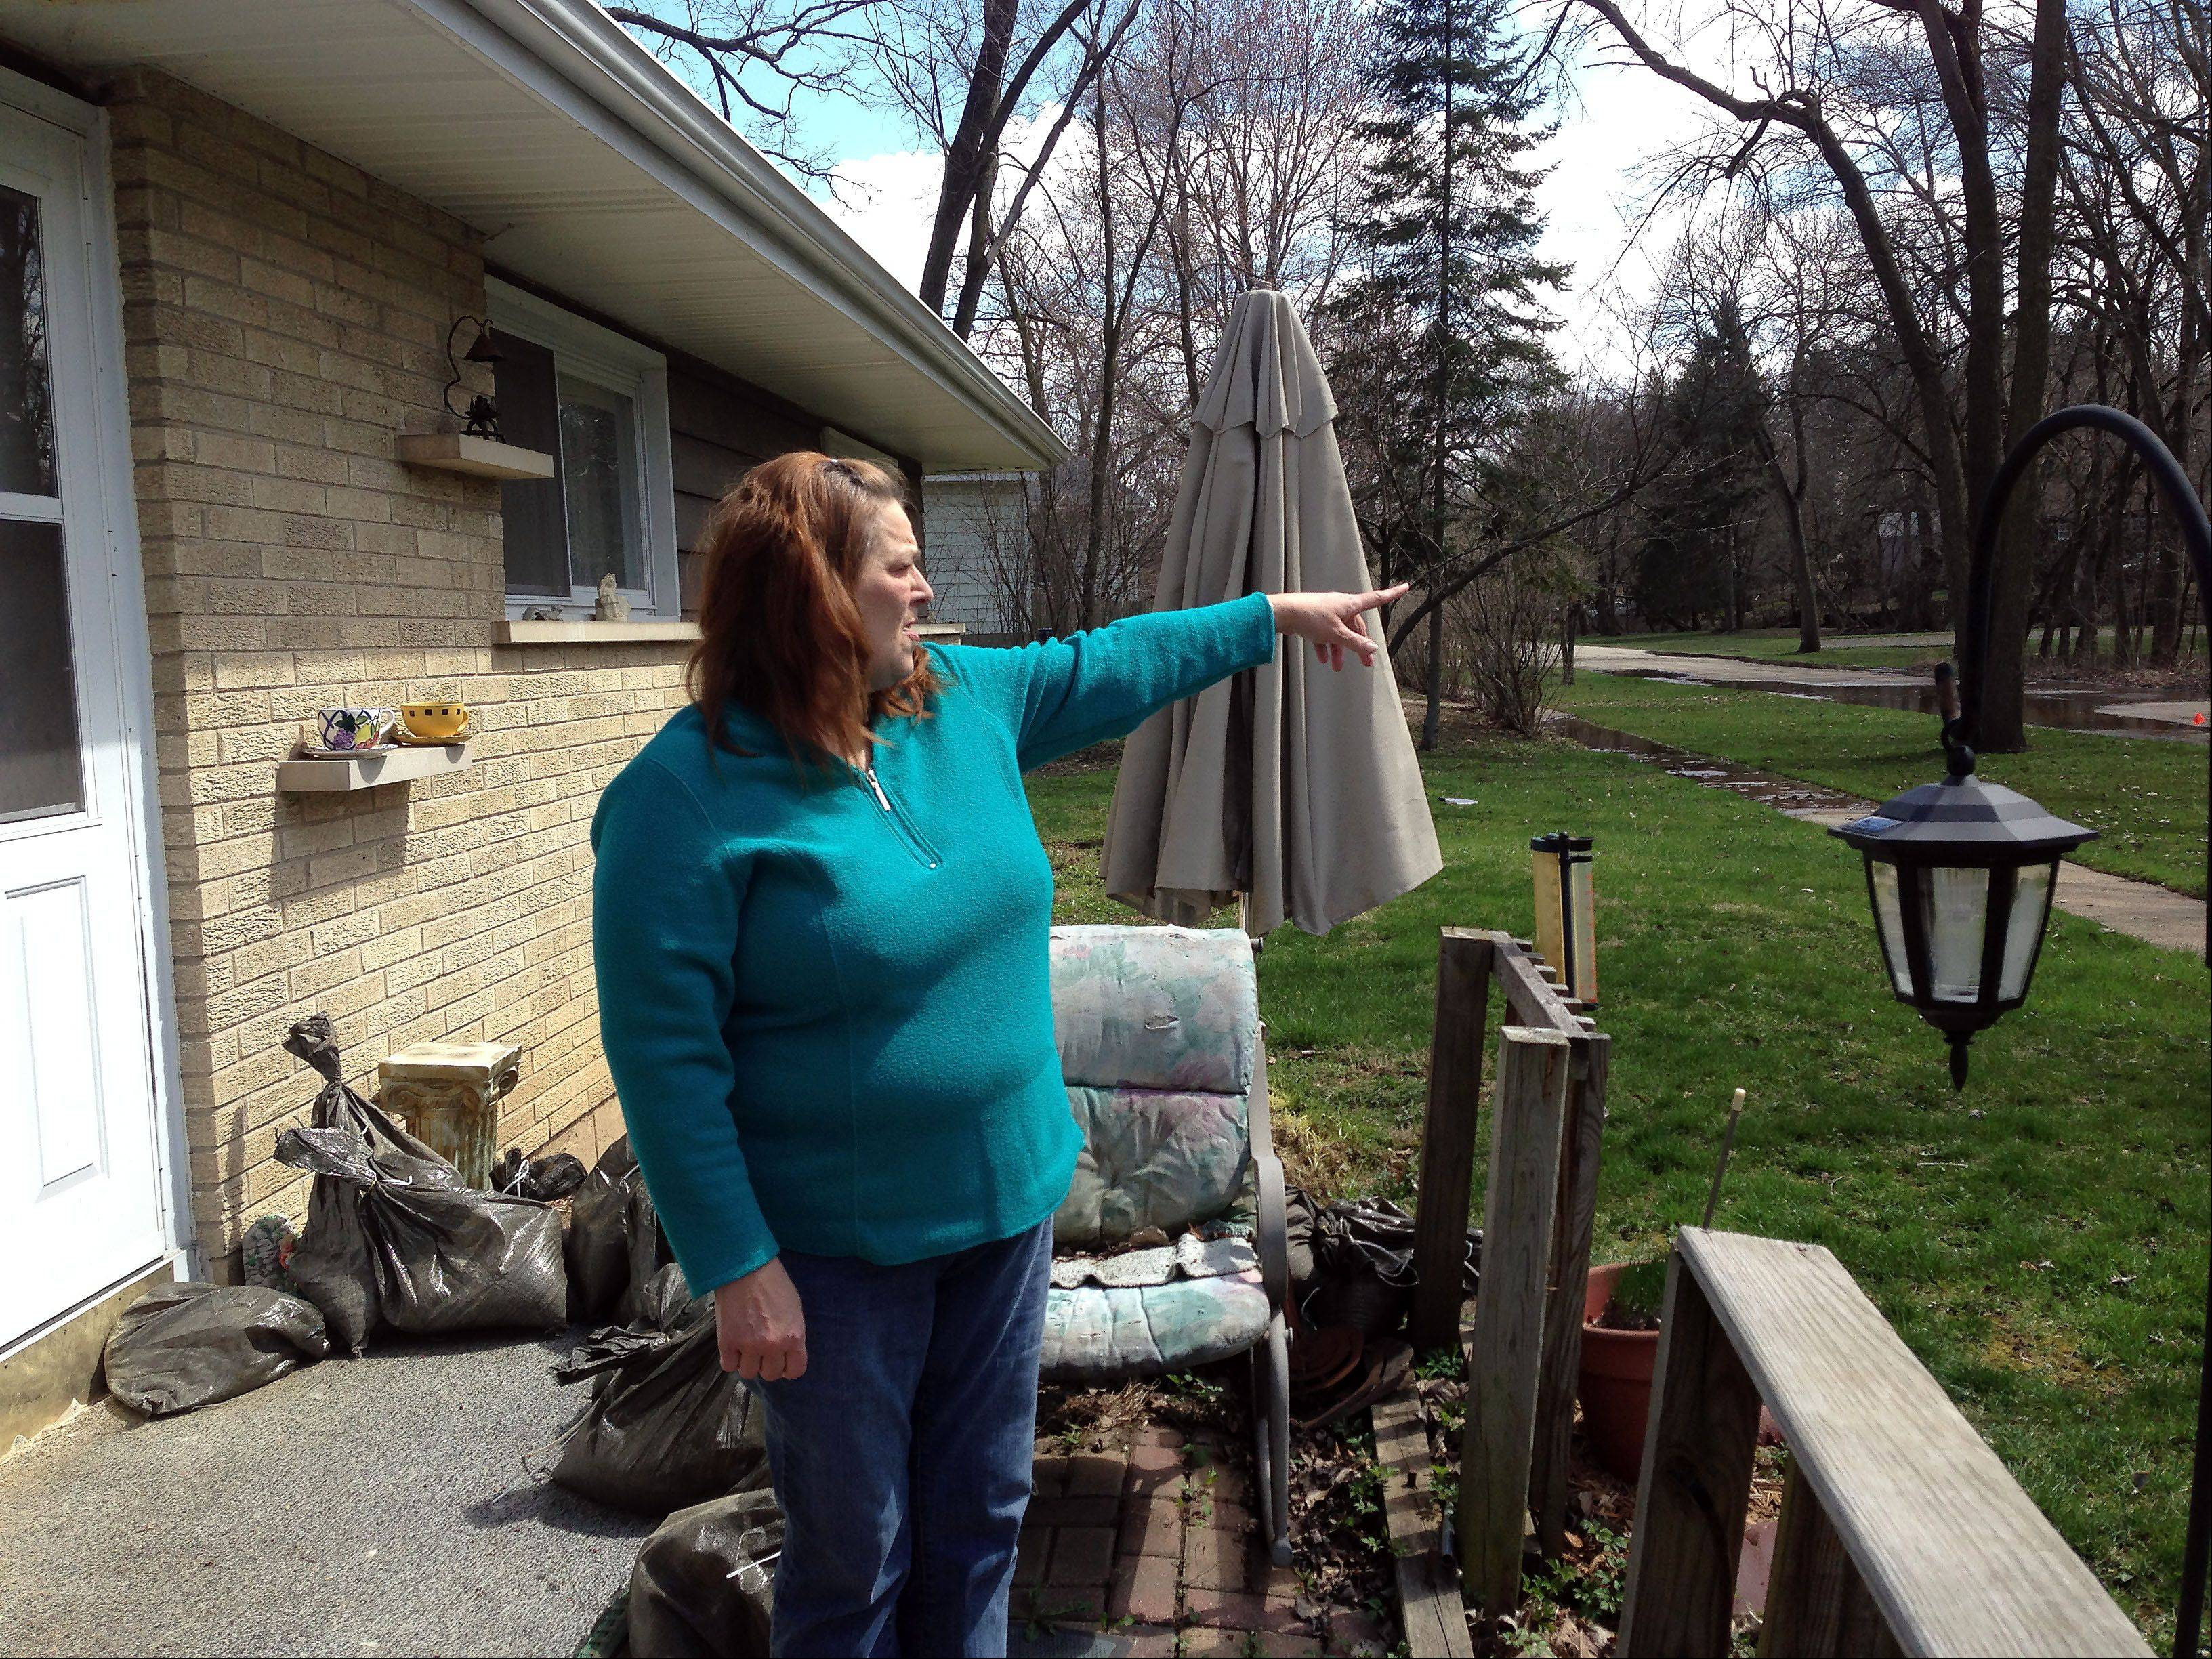 Spring and fall are always stressful times for Lorie Granderson, who lives in her childhood home on Willard Avenue, across the street from Willow Creek in Elgin. Last week�s storms were the second worst in memory, with the water stopping 7 to 8 feet from her garage.